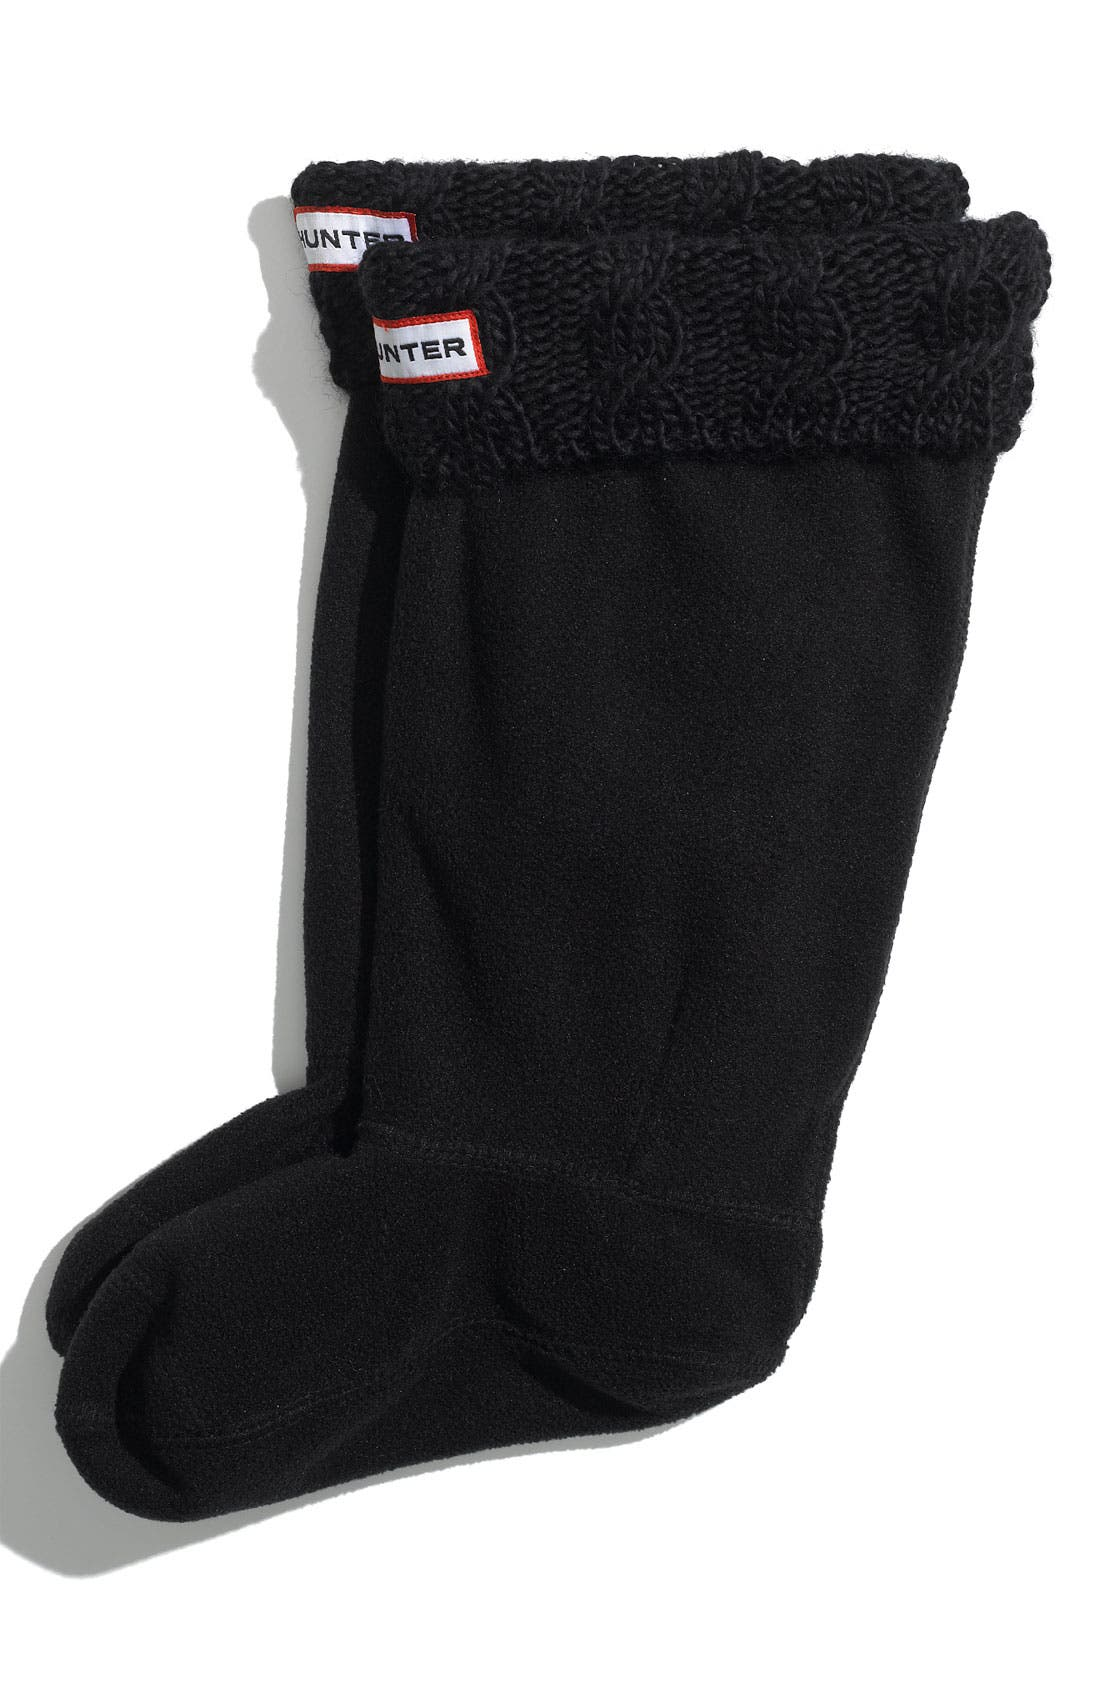 Alternate Image 1 Selected - Hunter Cabled Cuff Welly Socks (Toddler Girls, Little Girls & Big Girls)